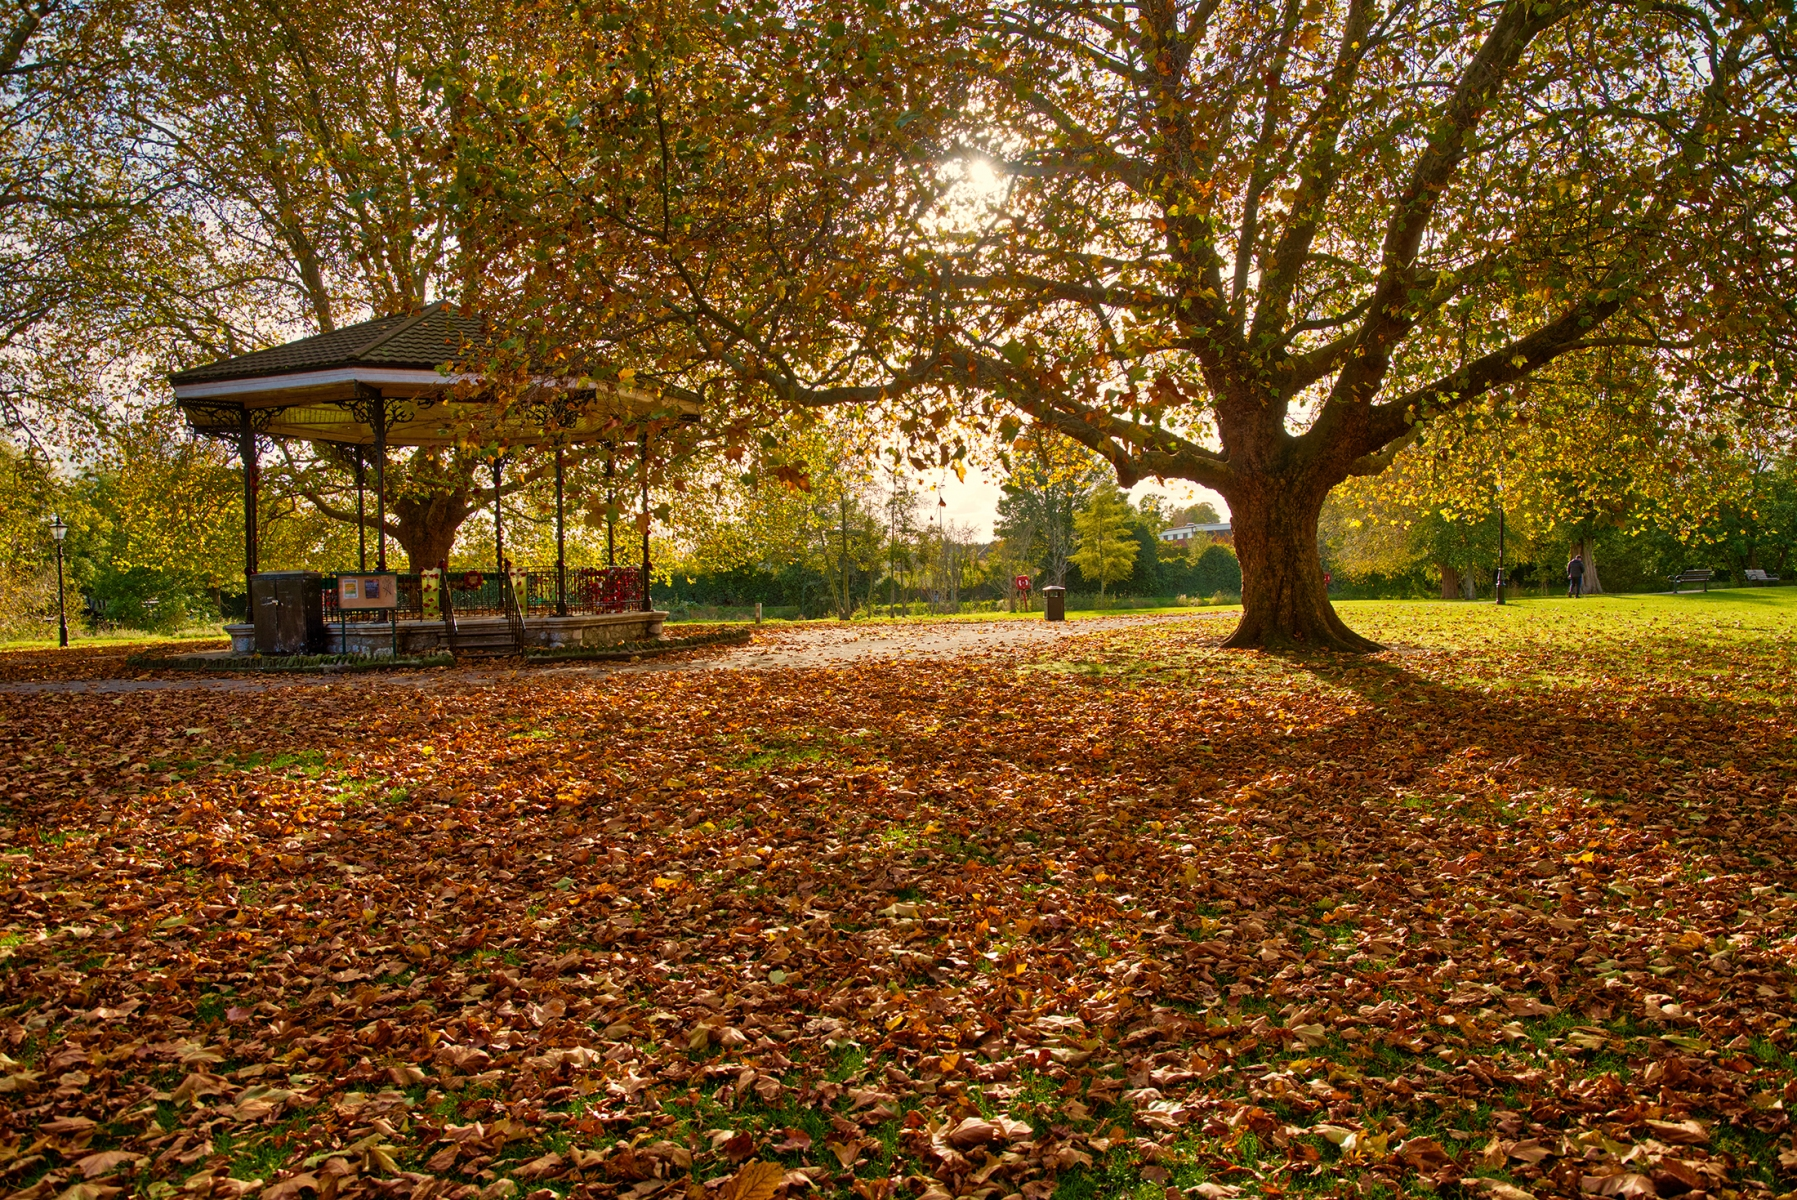 Bandstand, The Embankment, Bedford in Autumn